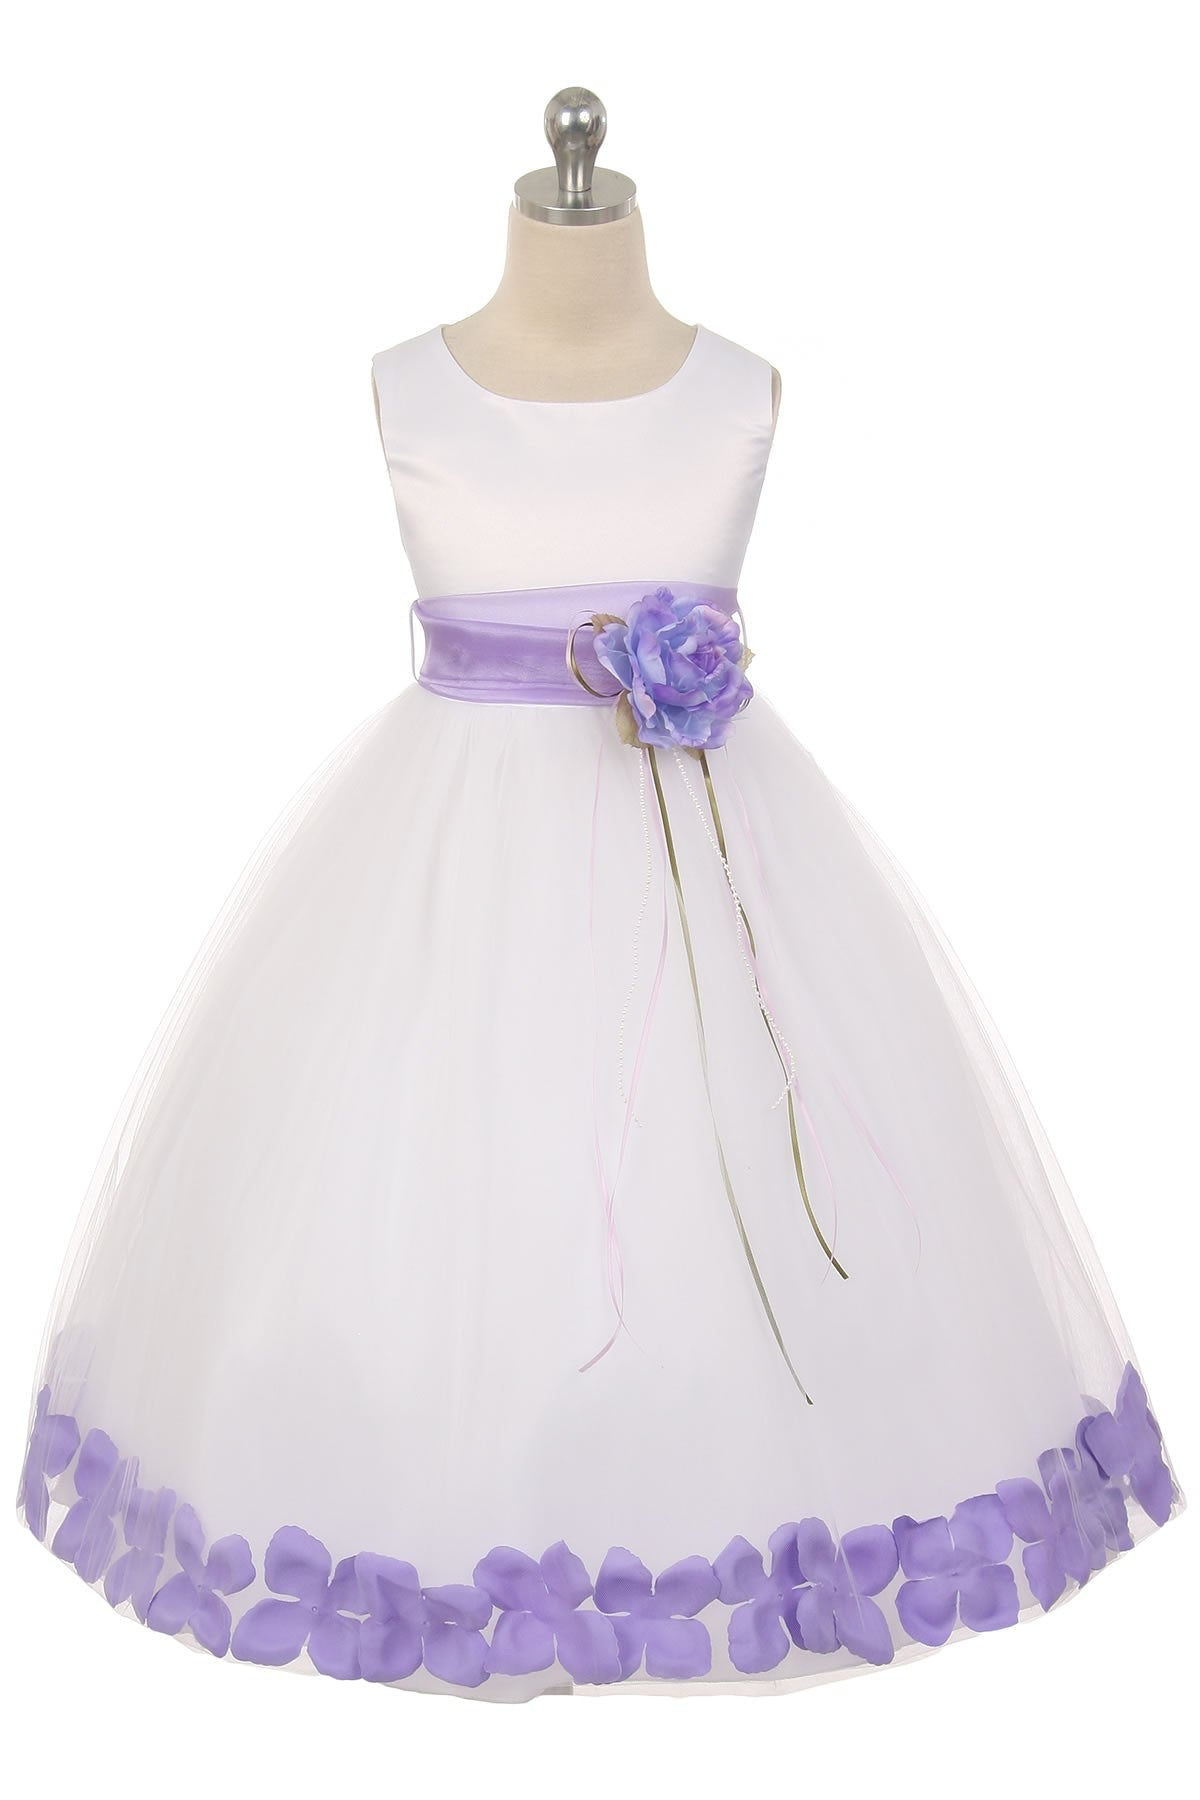 Flower Petal Dress w/ Sash (White Dress) 1of2